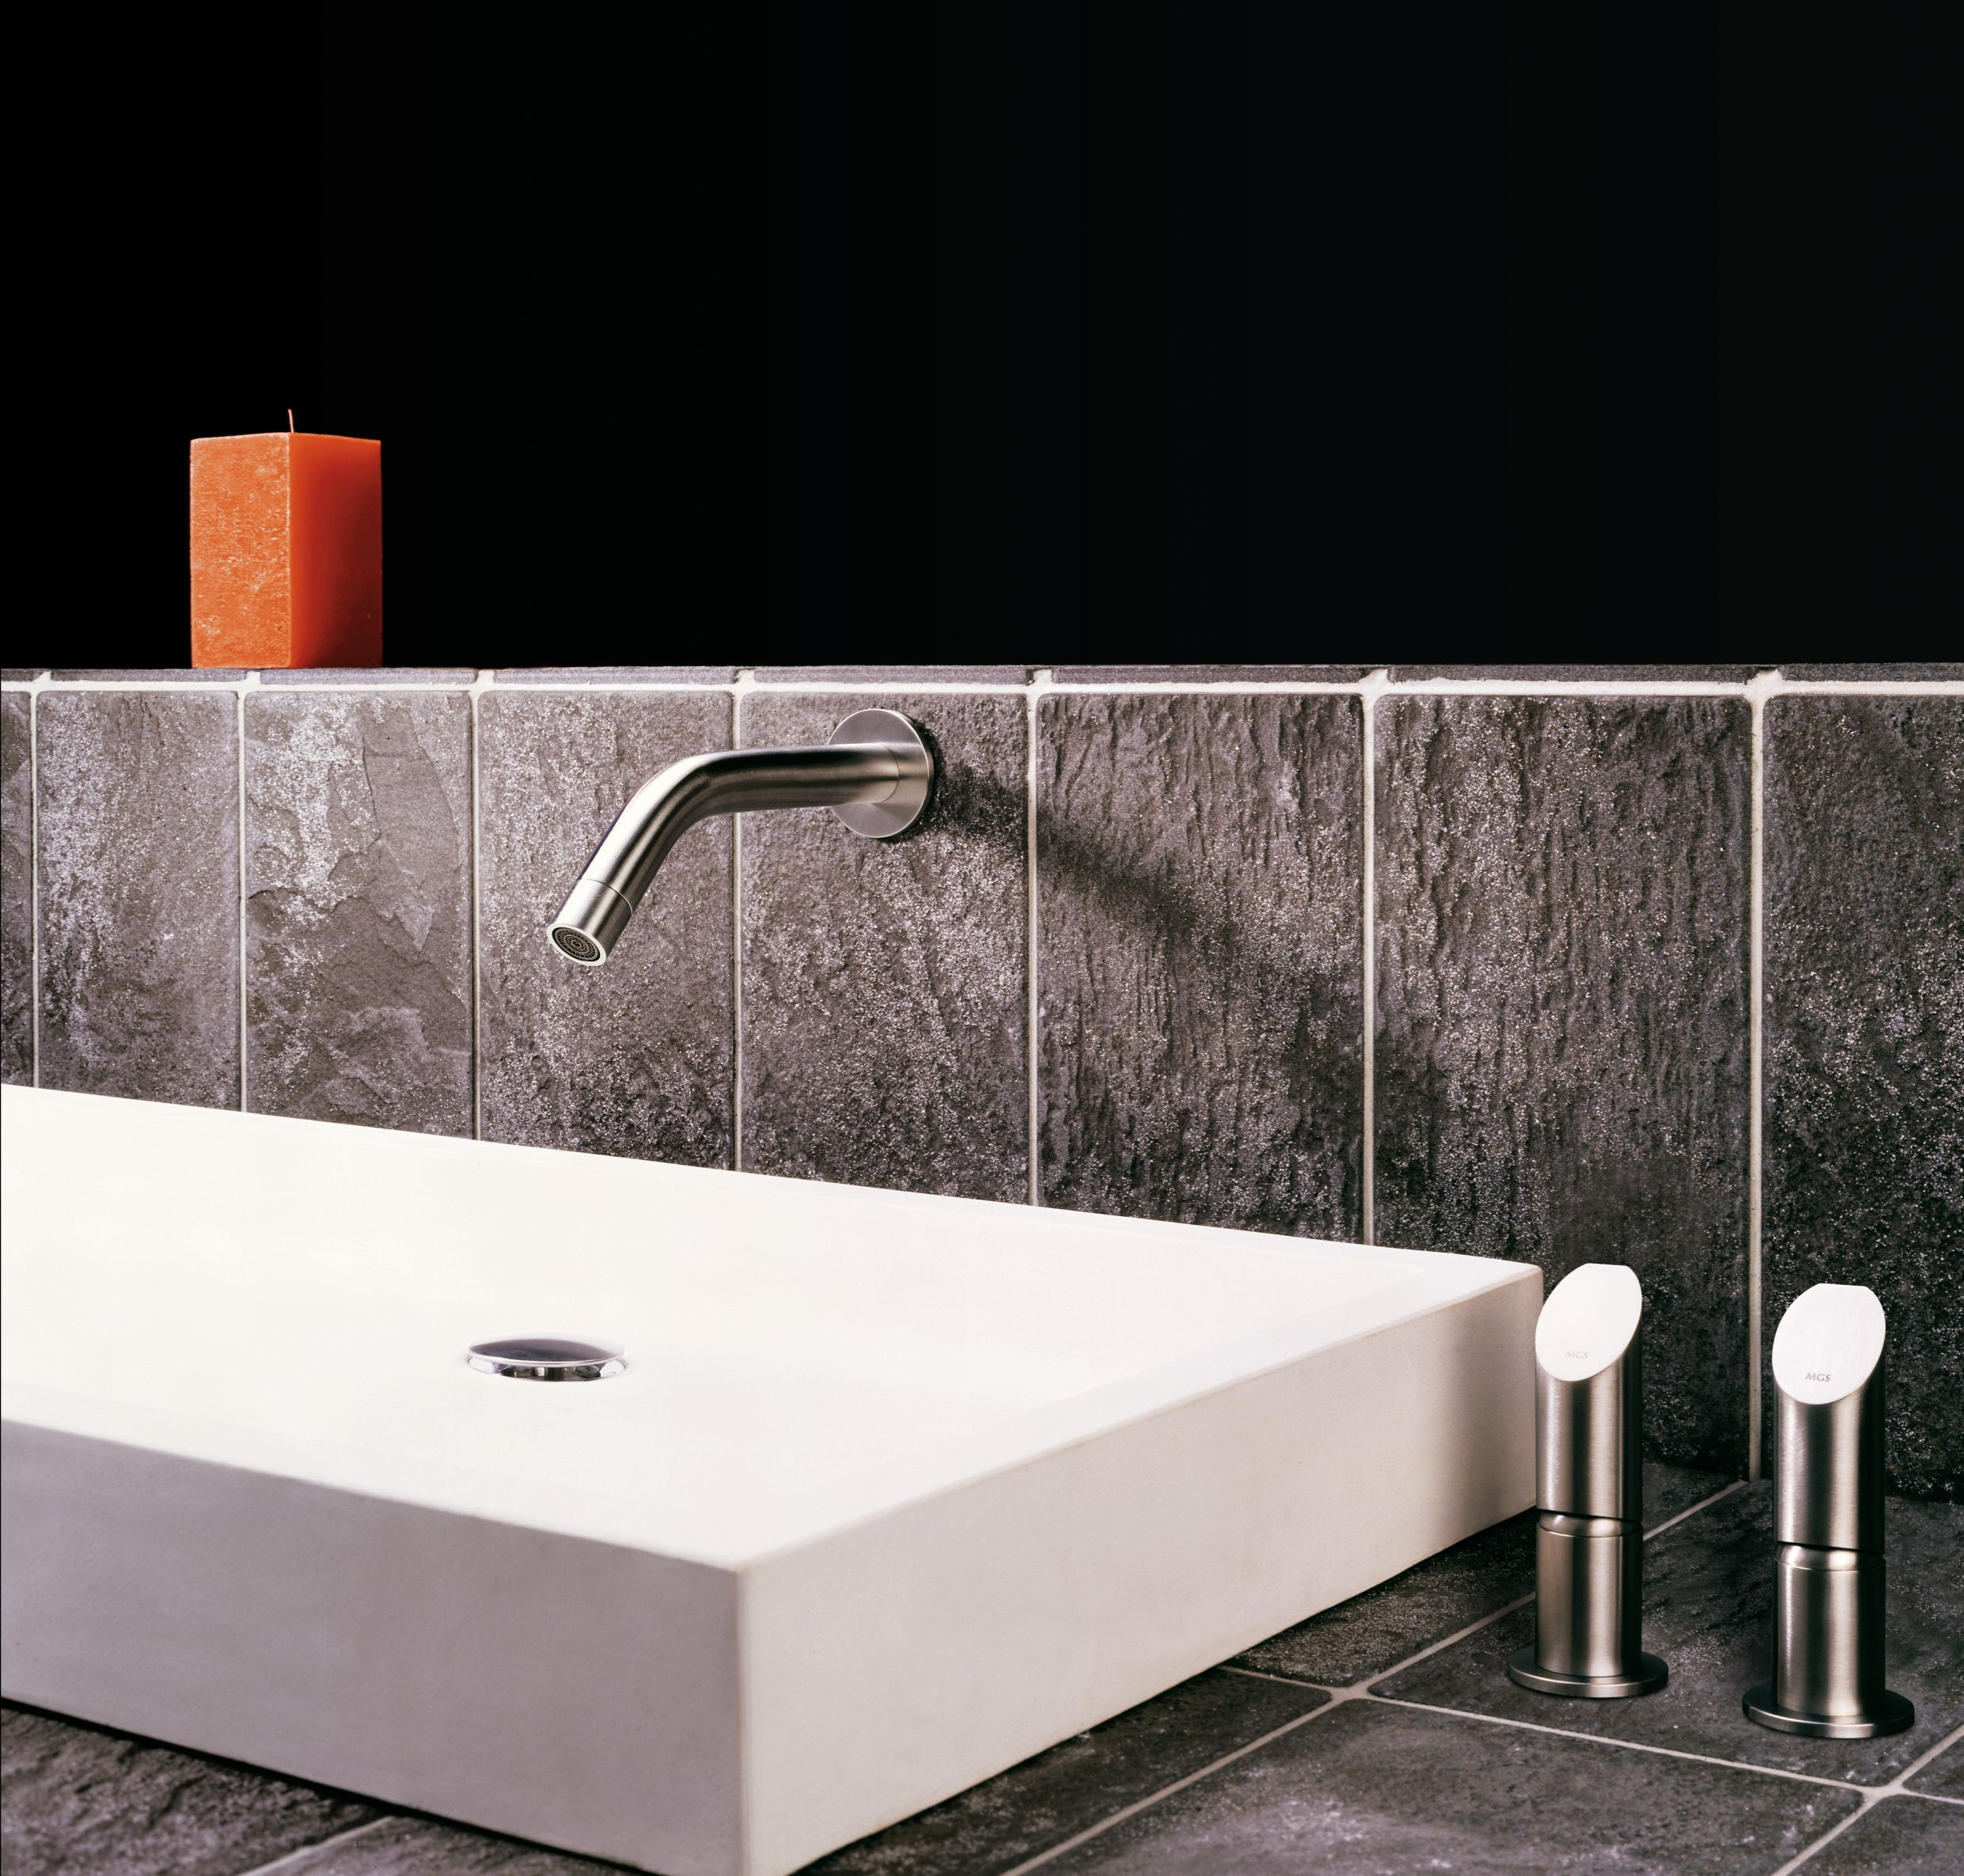 Cb211 Cb8 Product Review Stainless Steel Bathroom Bathroom Faucets Stainless Steel Faucets